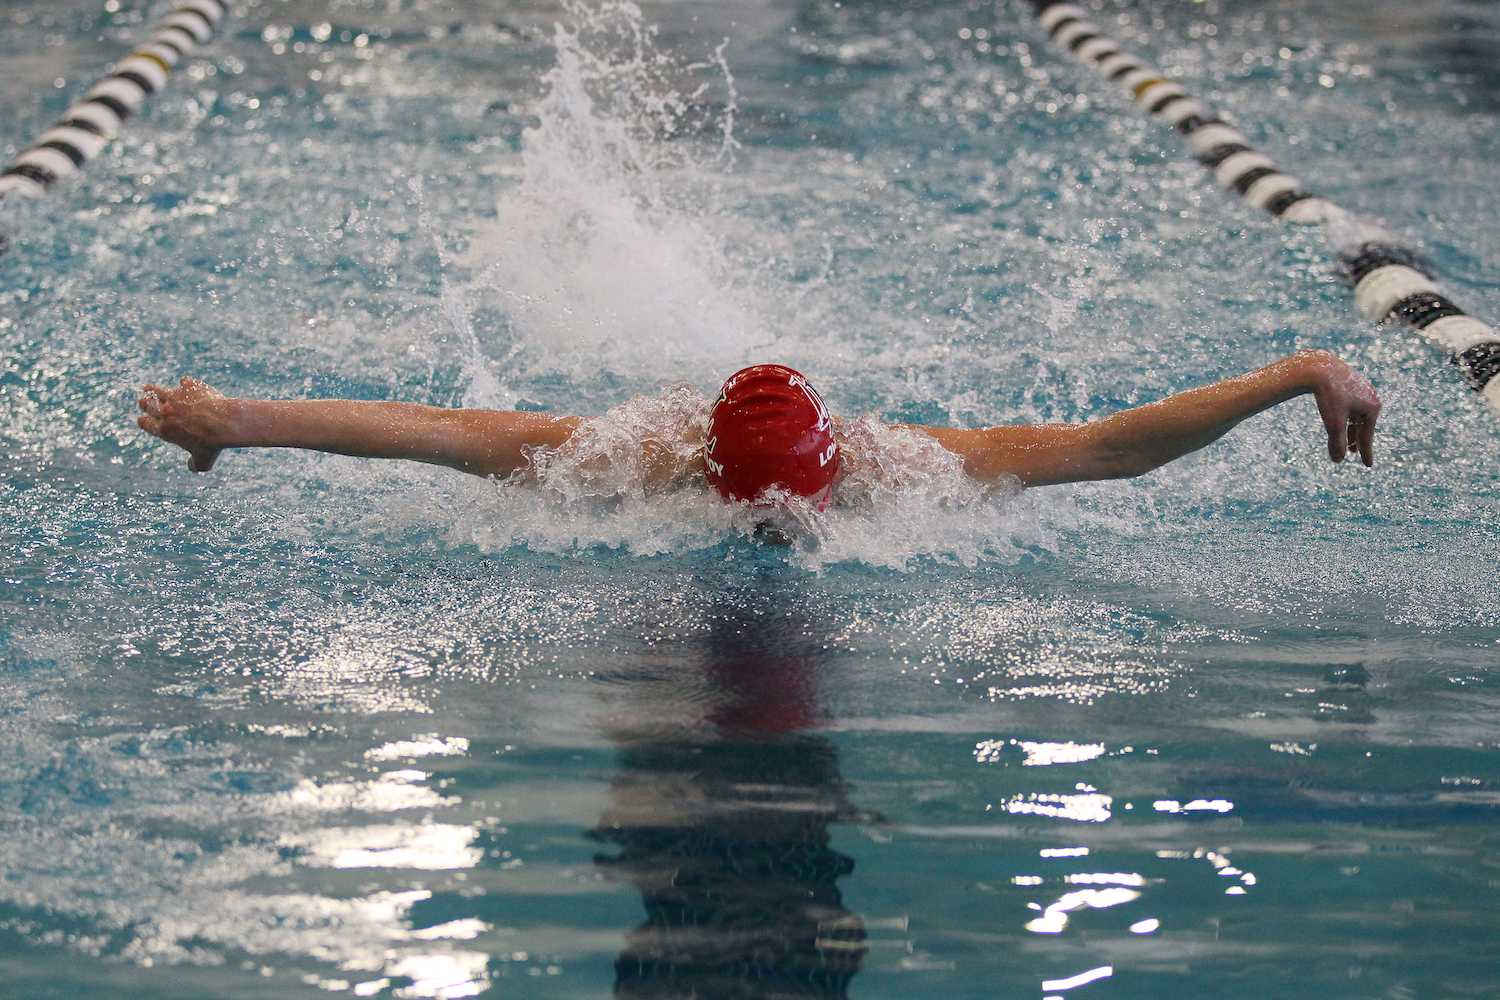 James Vaughn races at the regionals swim meet. He is swimming the butterfly portion of the 200 individual medley.